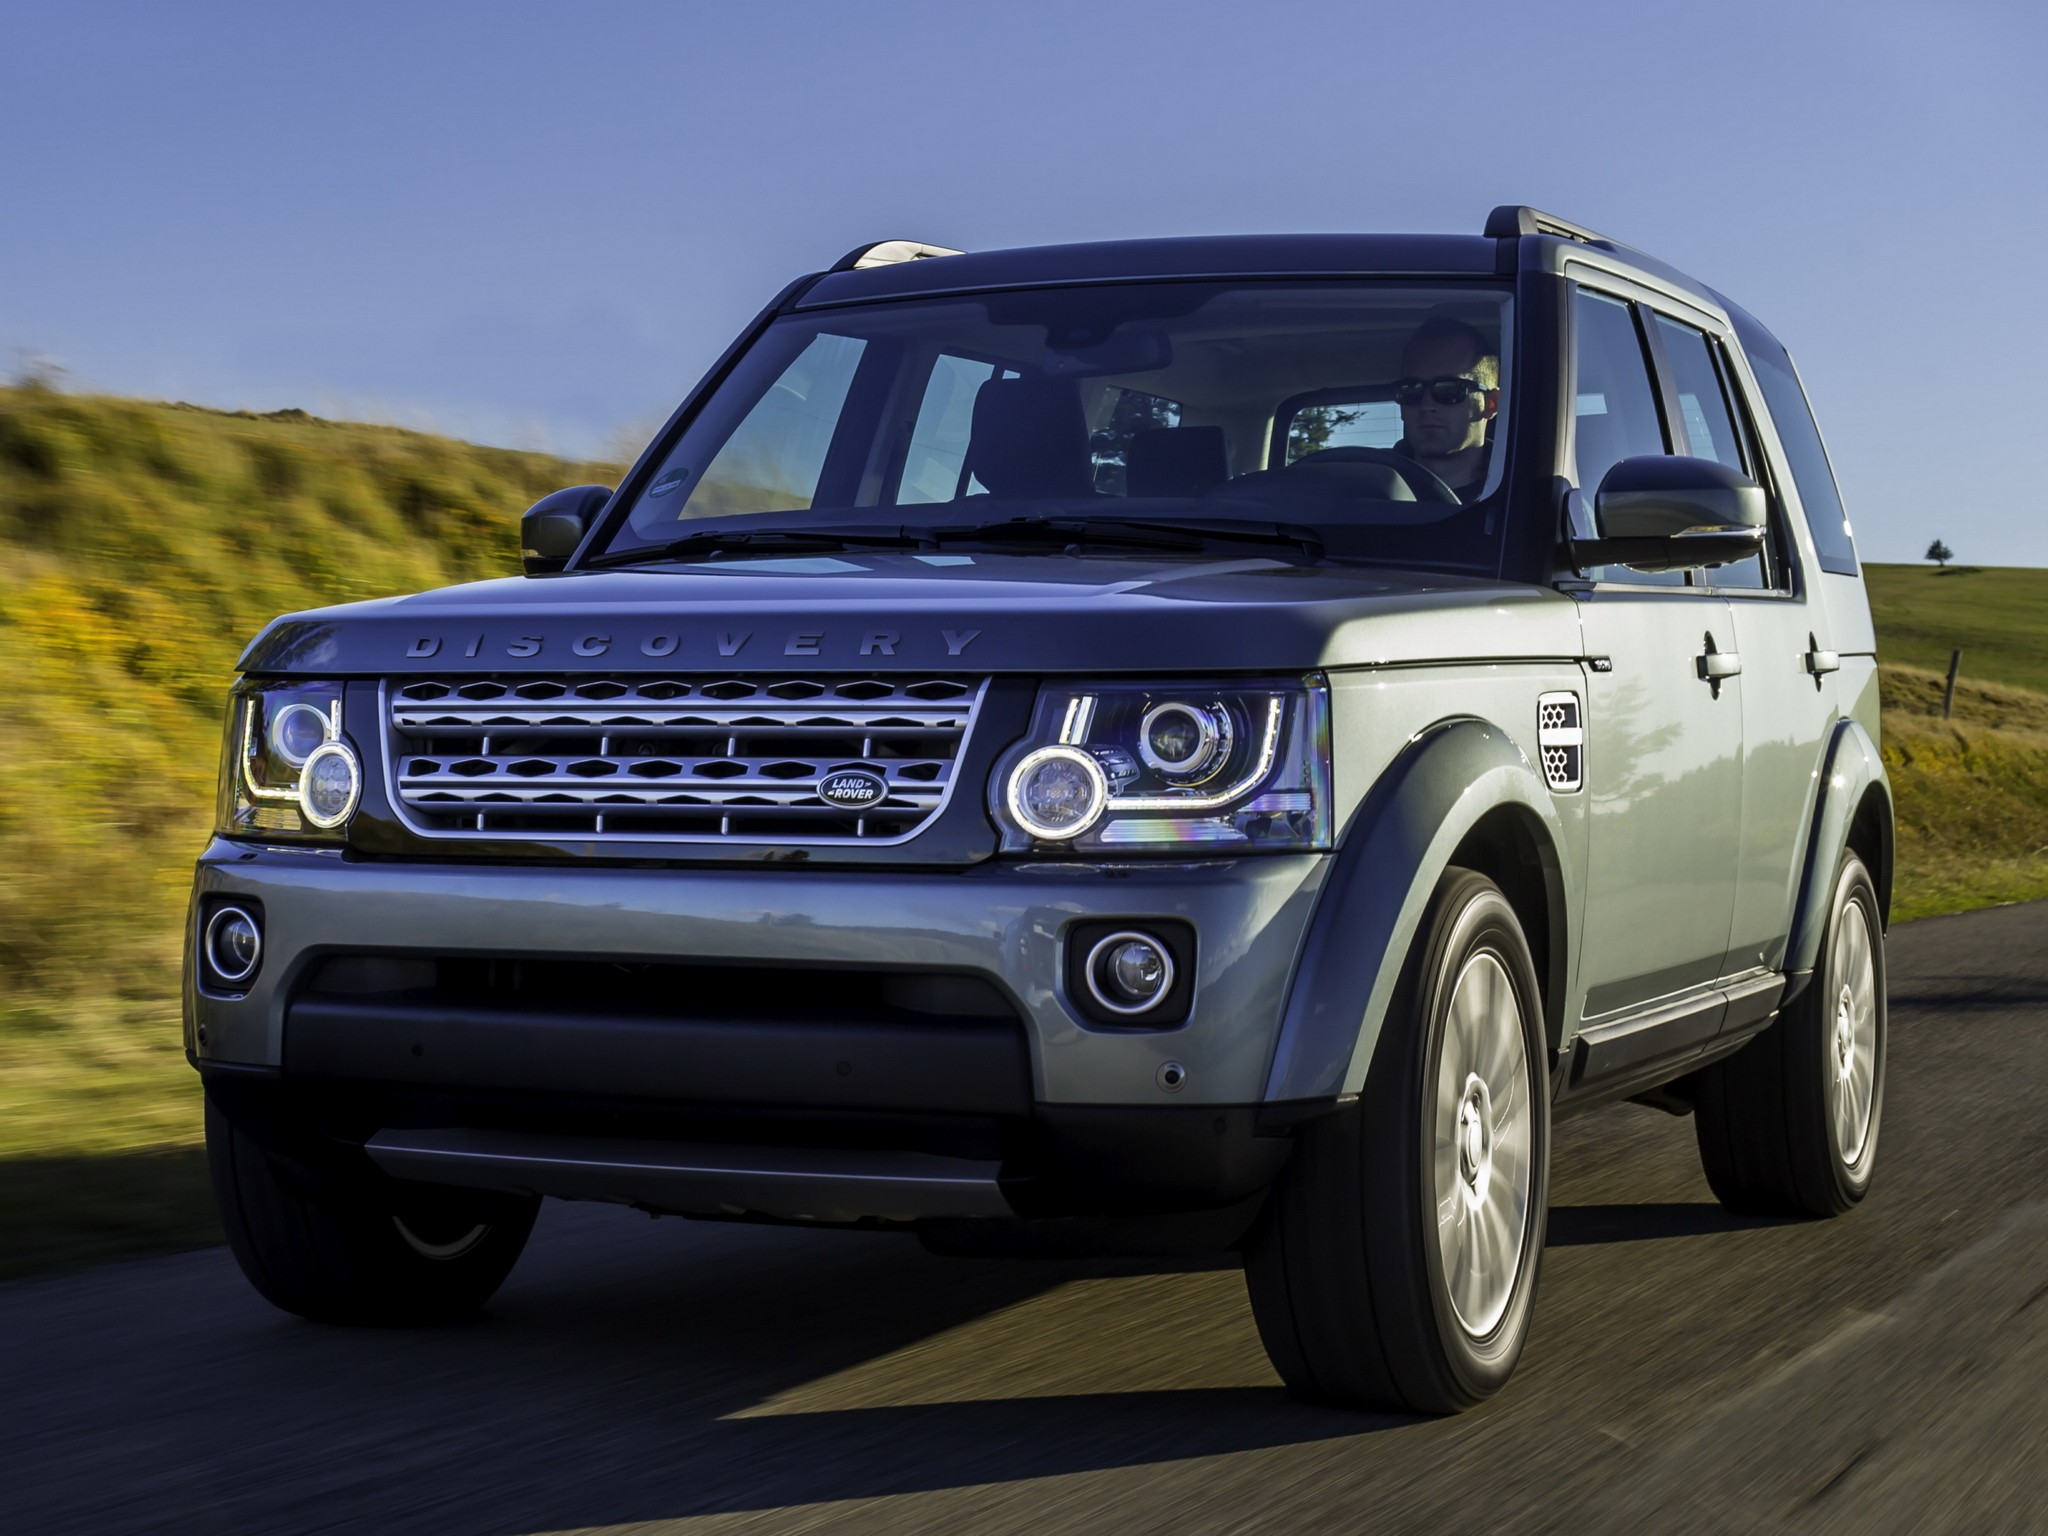 land rover discovery lr4 specs photos 2013 2014 2015 2016 2017 2018 autoevolution. Black Bedroom Furniture Sets. Home Design Ideas